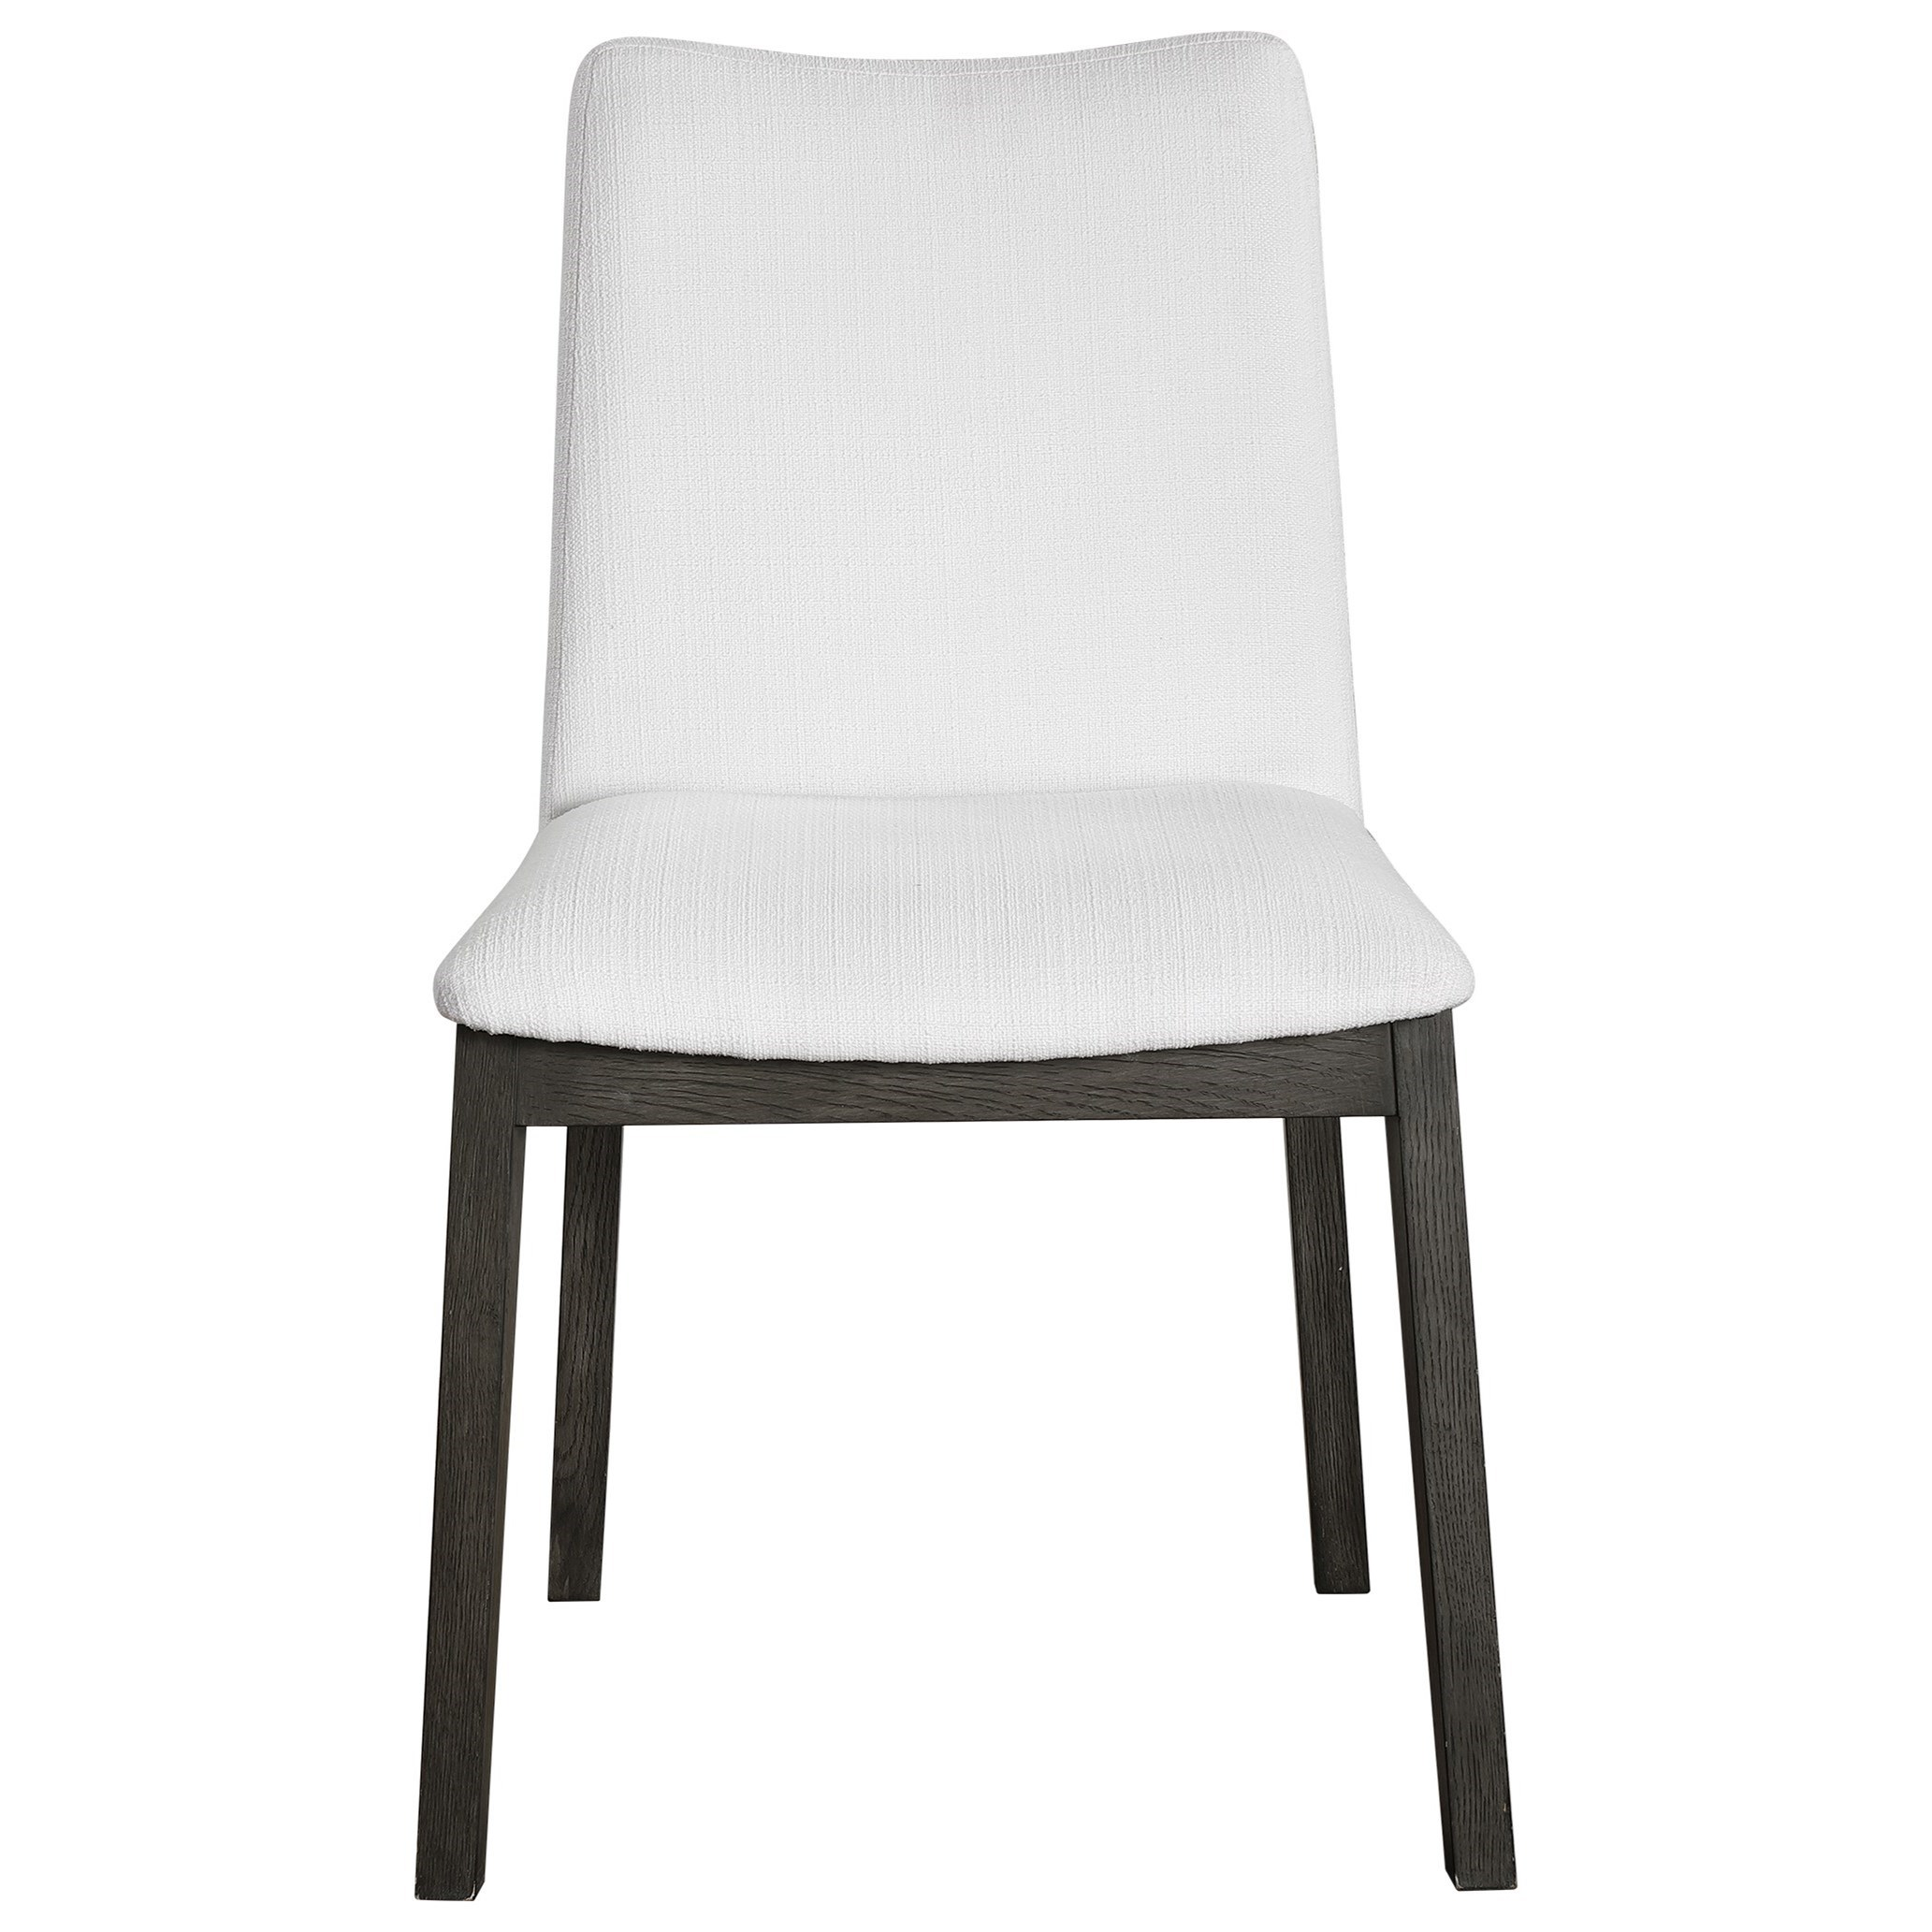 Accent Furniture - Accent Chairs Delano White Armless Chair S/2 by Uttermost at Factory Direct Furniture